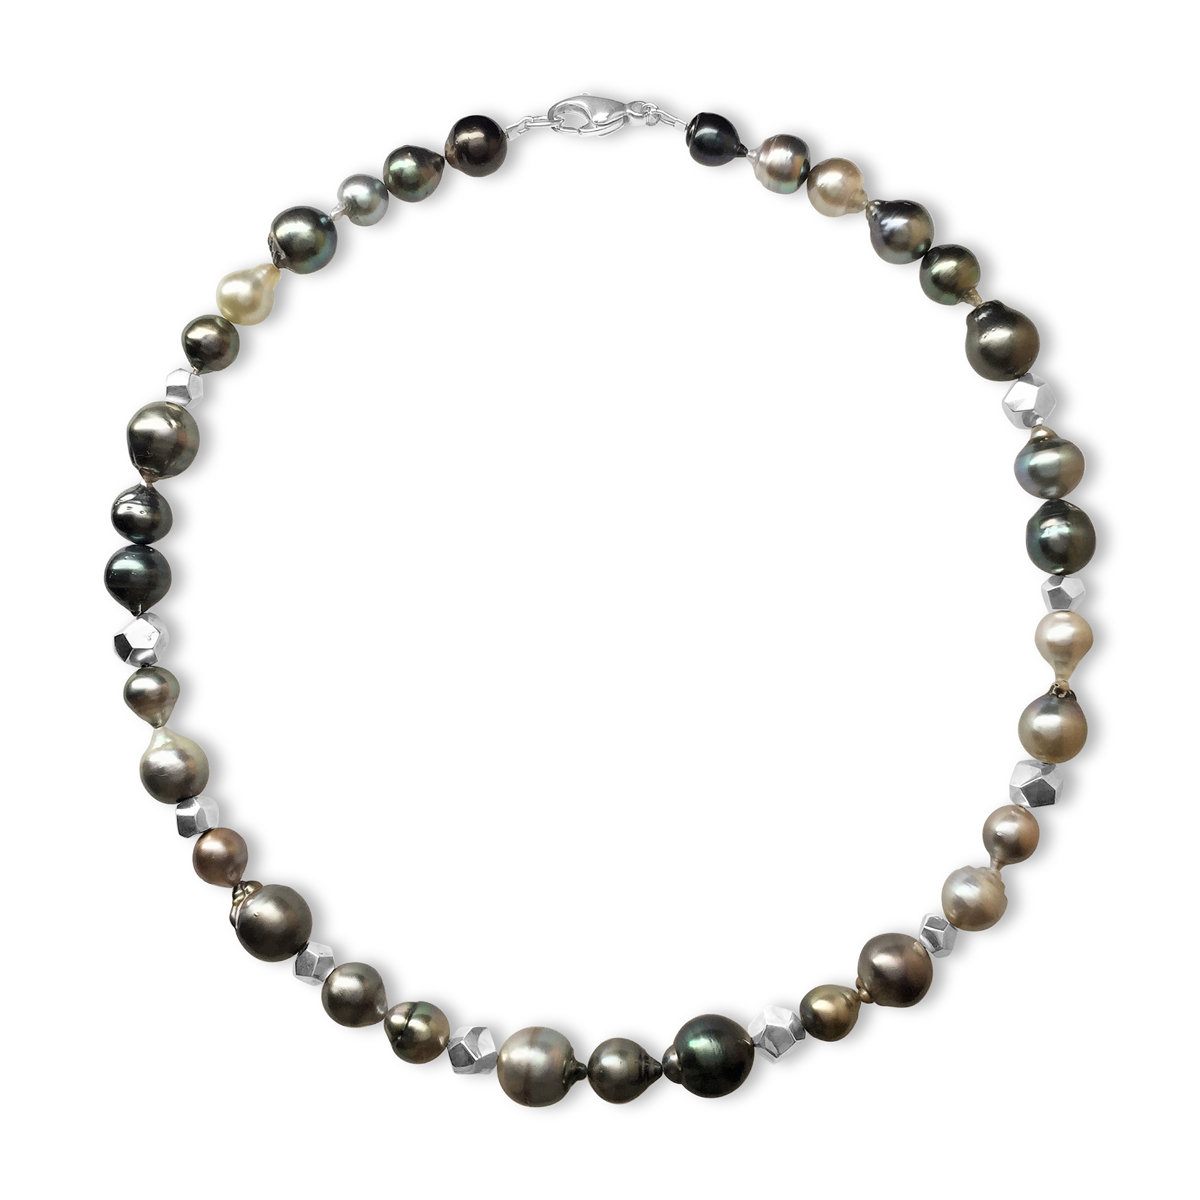 Decca silver Tahitian pearl necklace